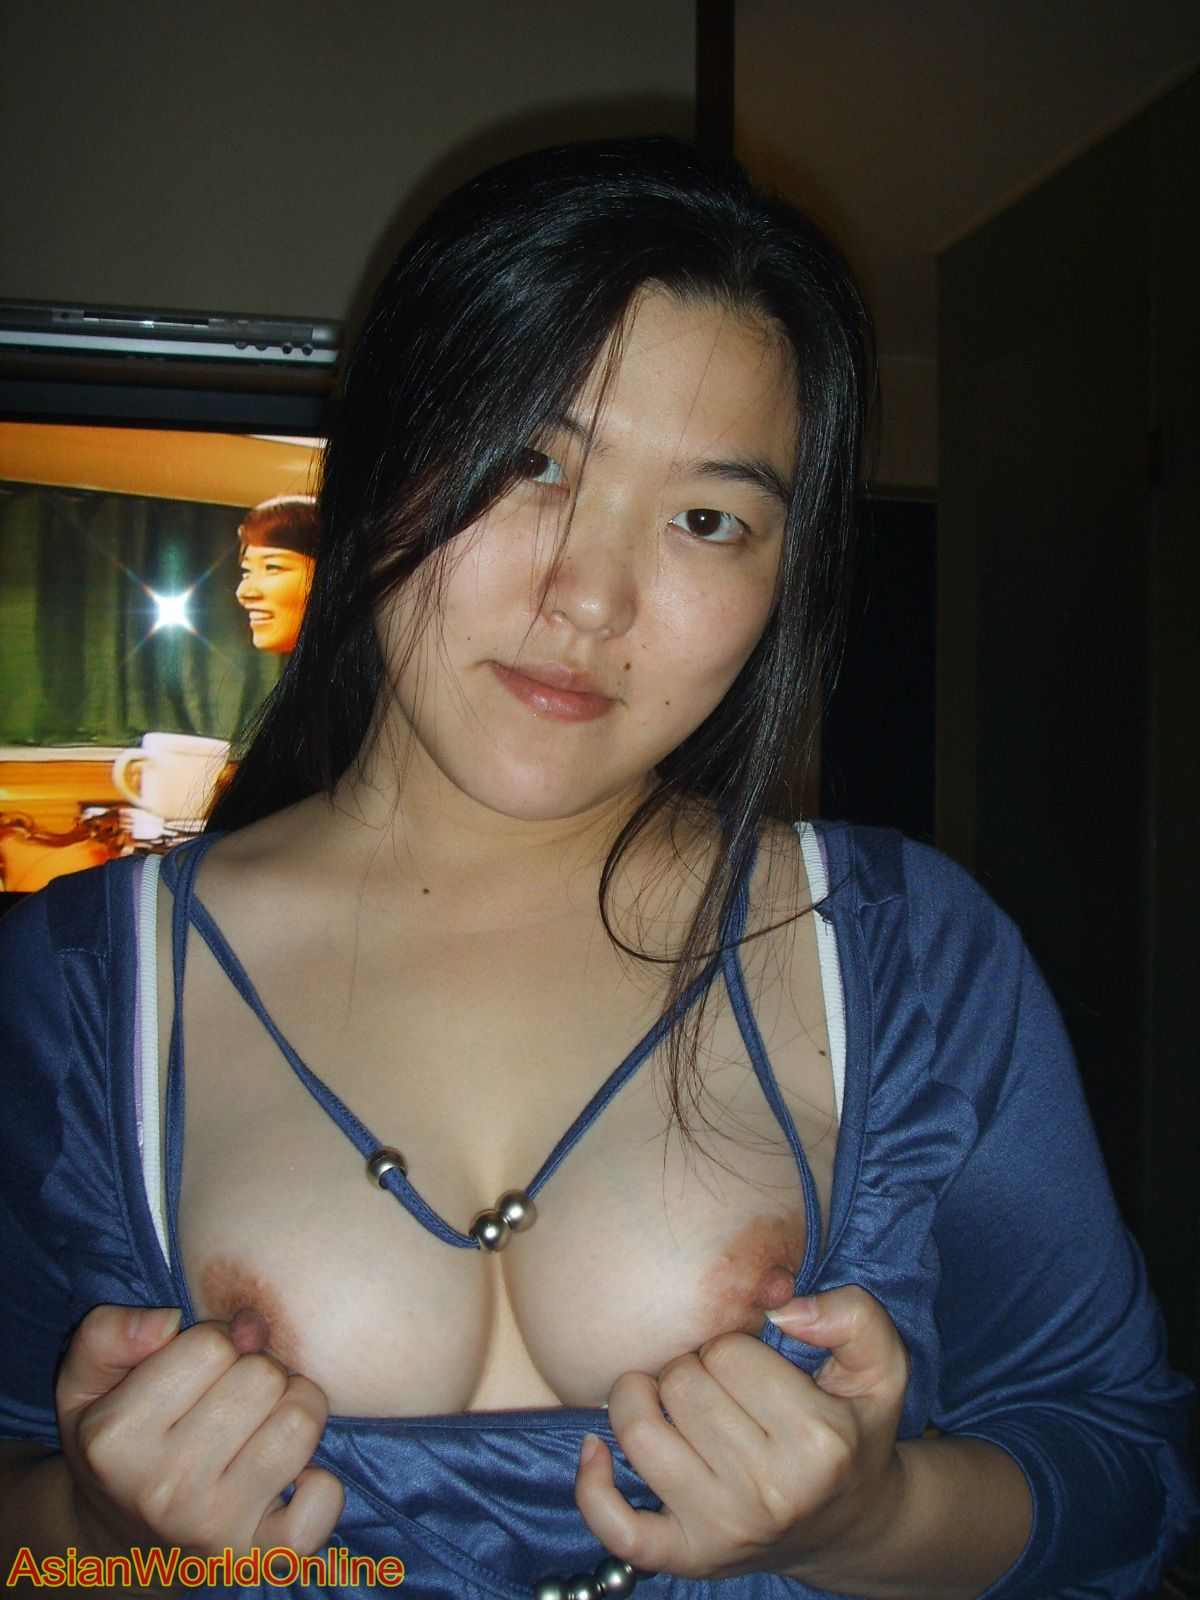 Dude chubby korean gallery fucking great. Watch